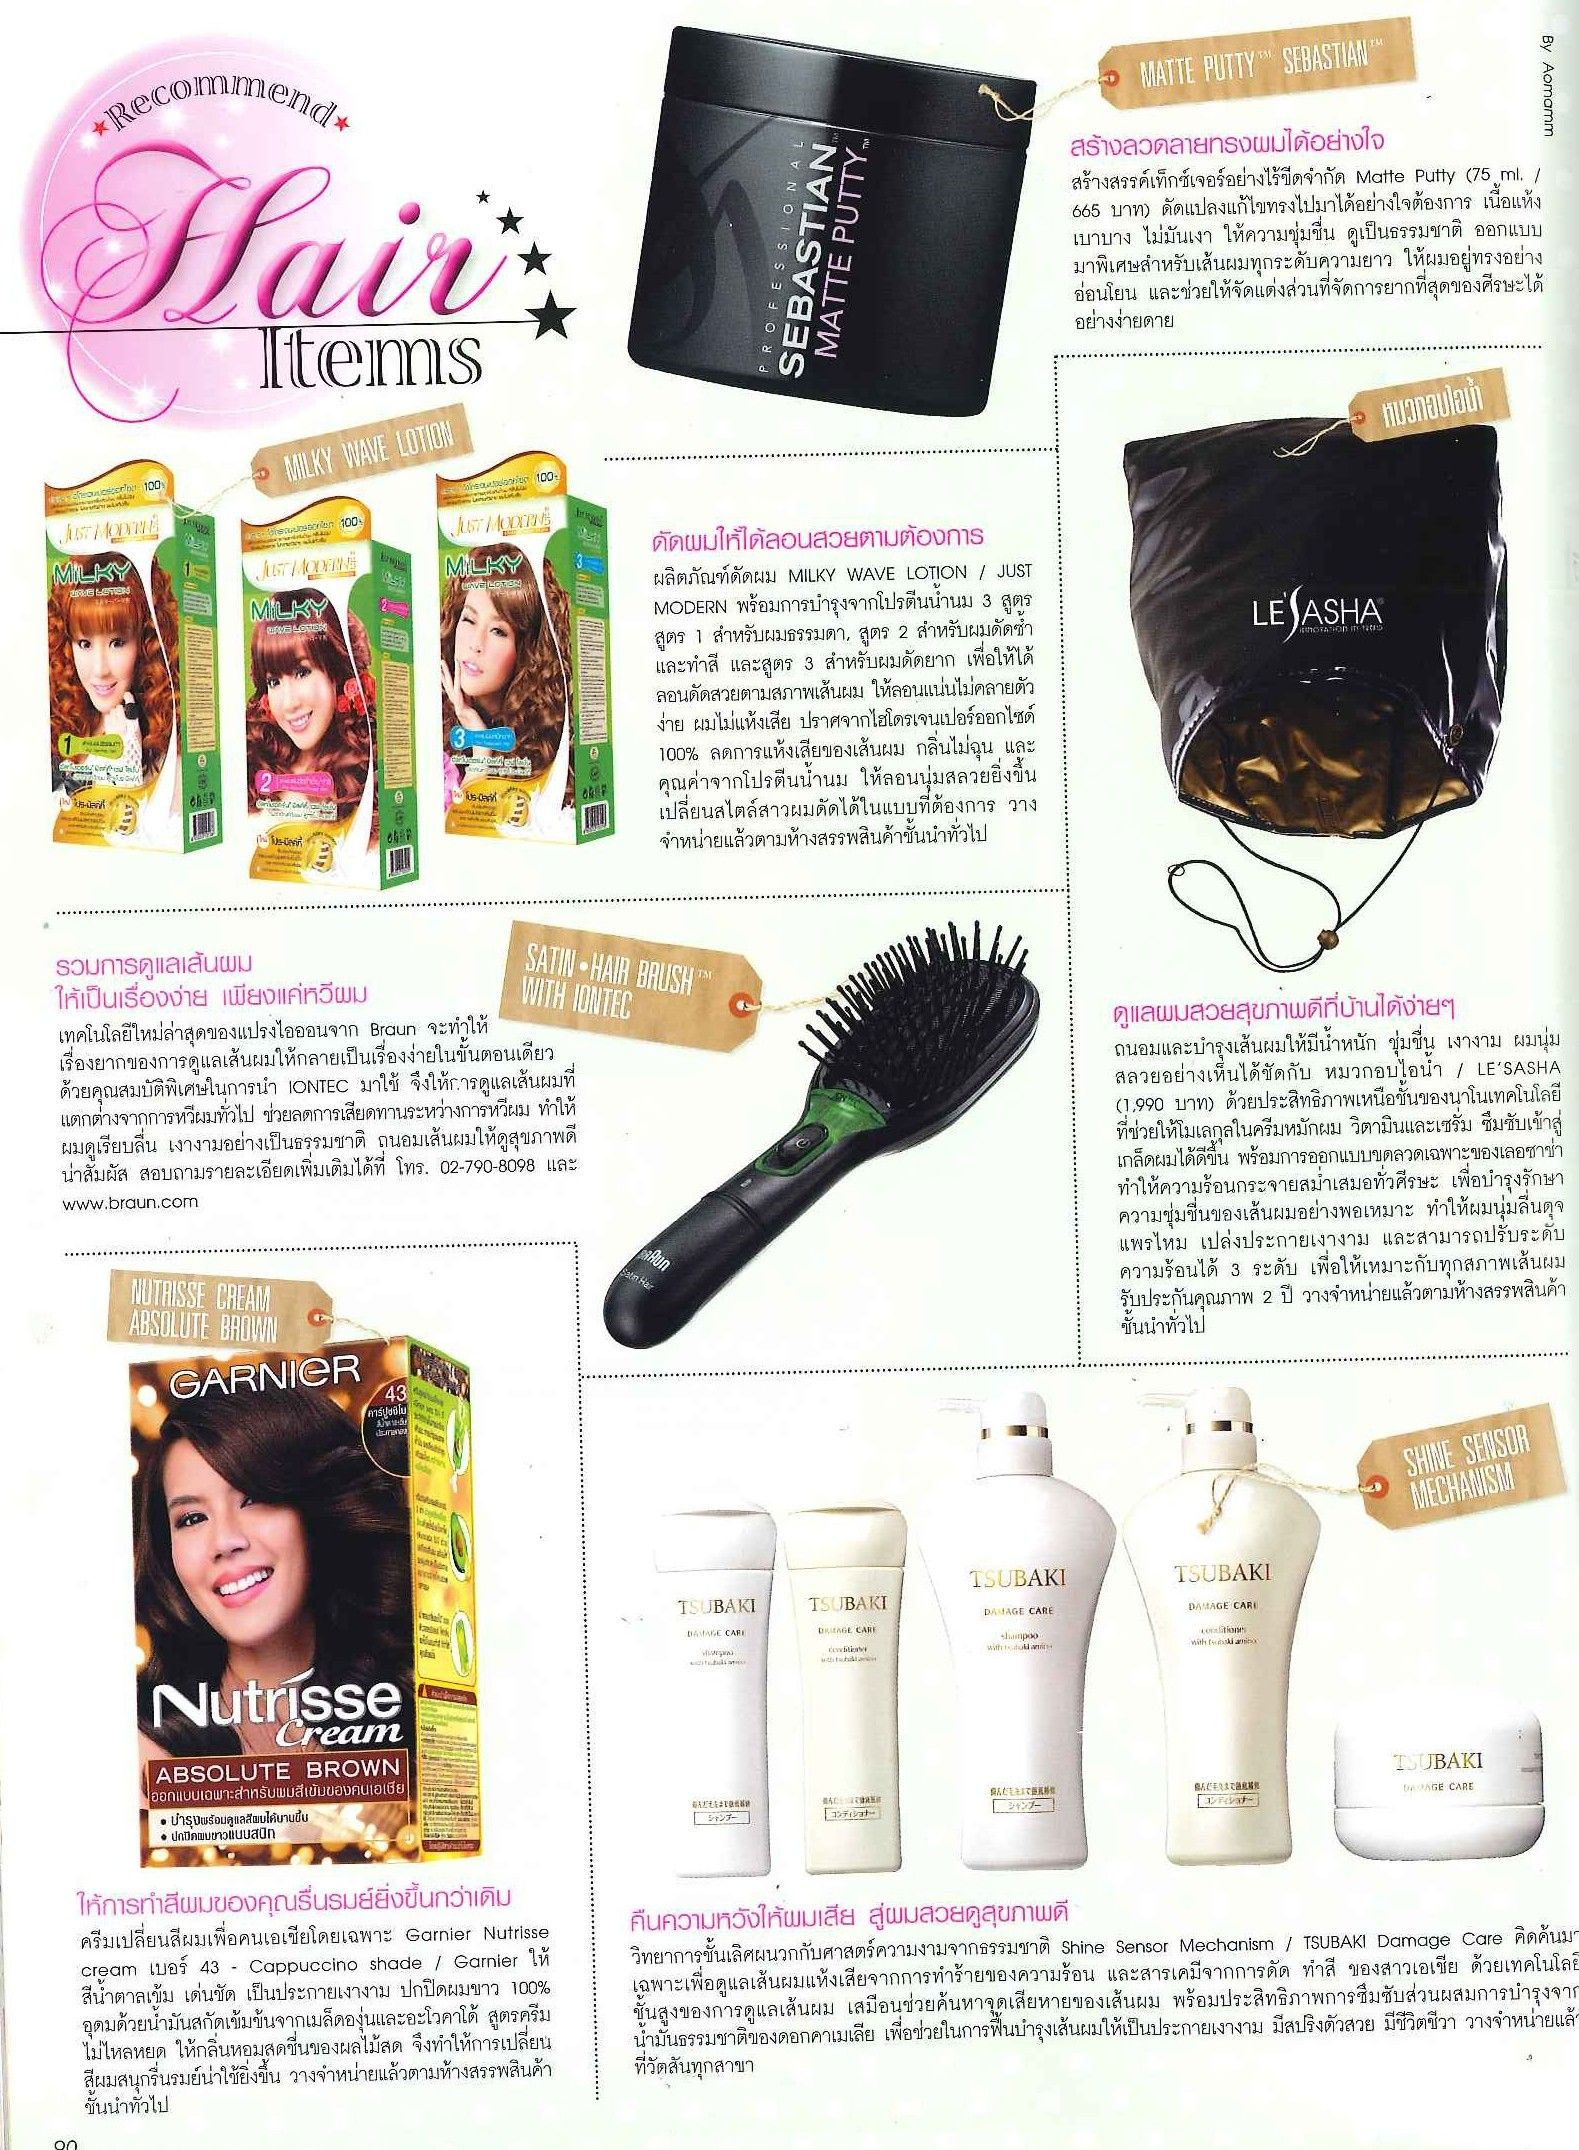 Recommend hair items